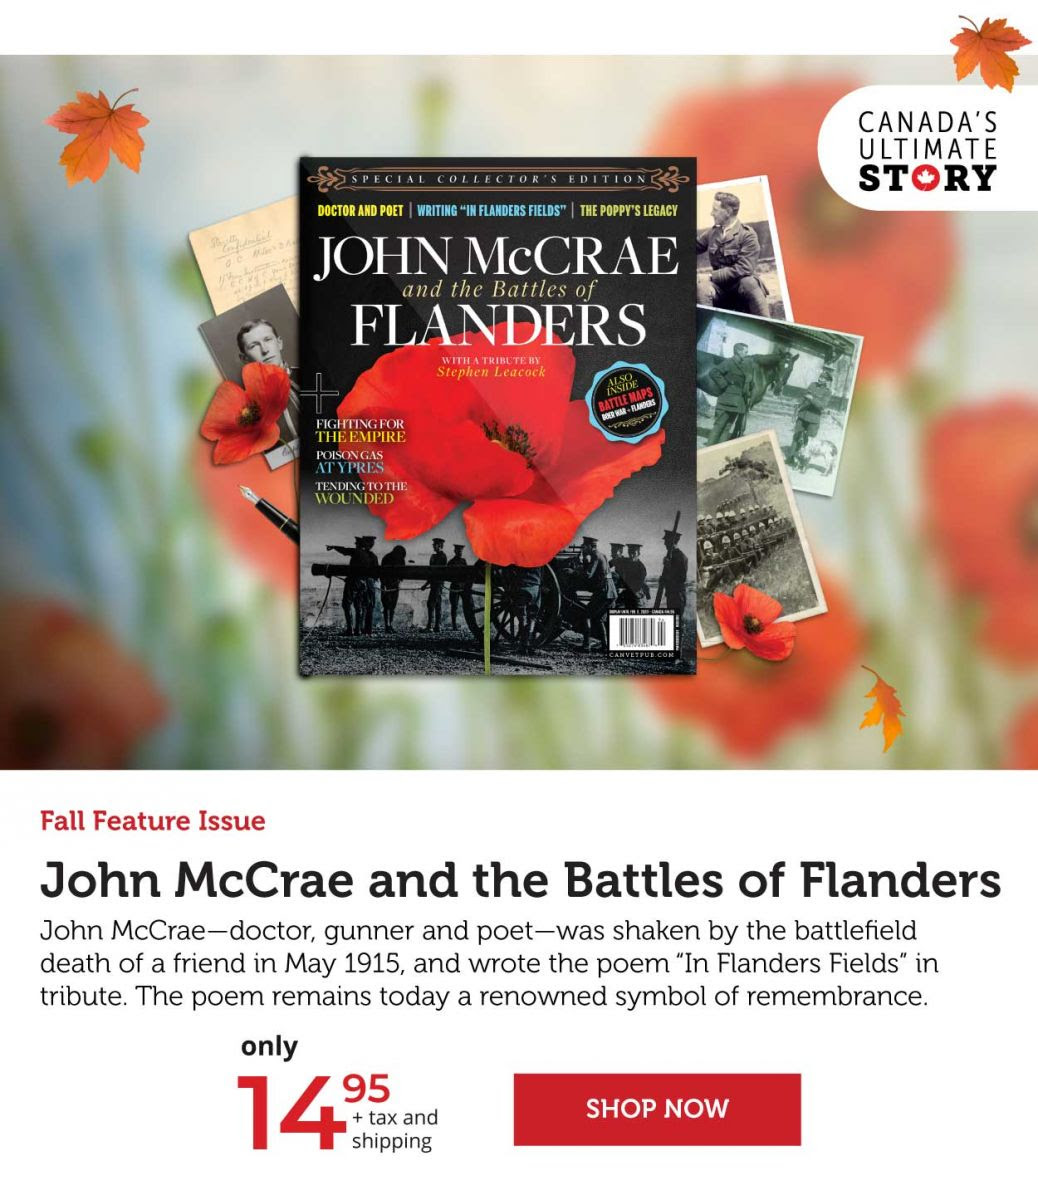 John McCrae and the Battles of Flanders